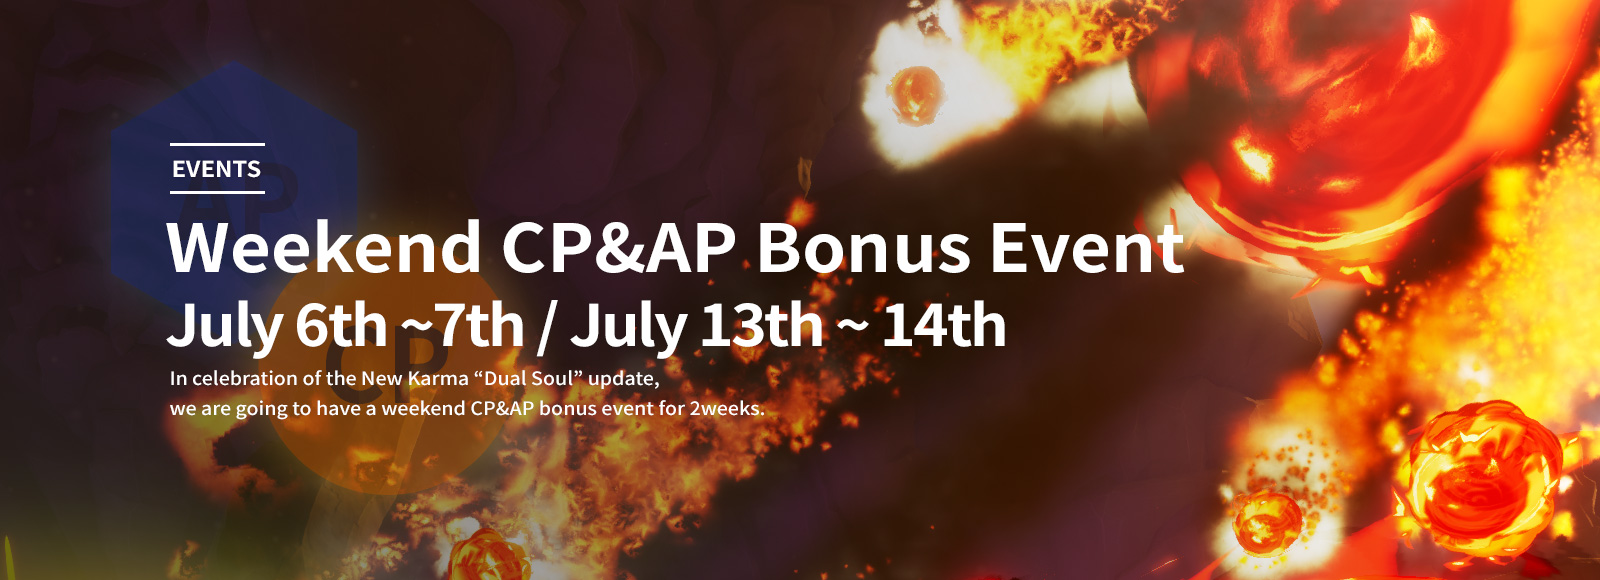 Weekend CP & AP Bonus Event